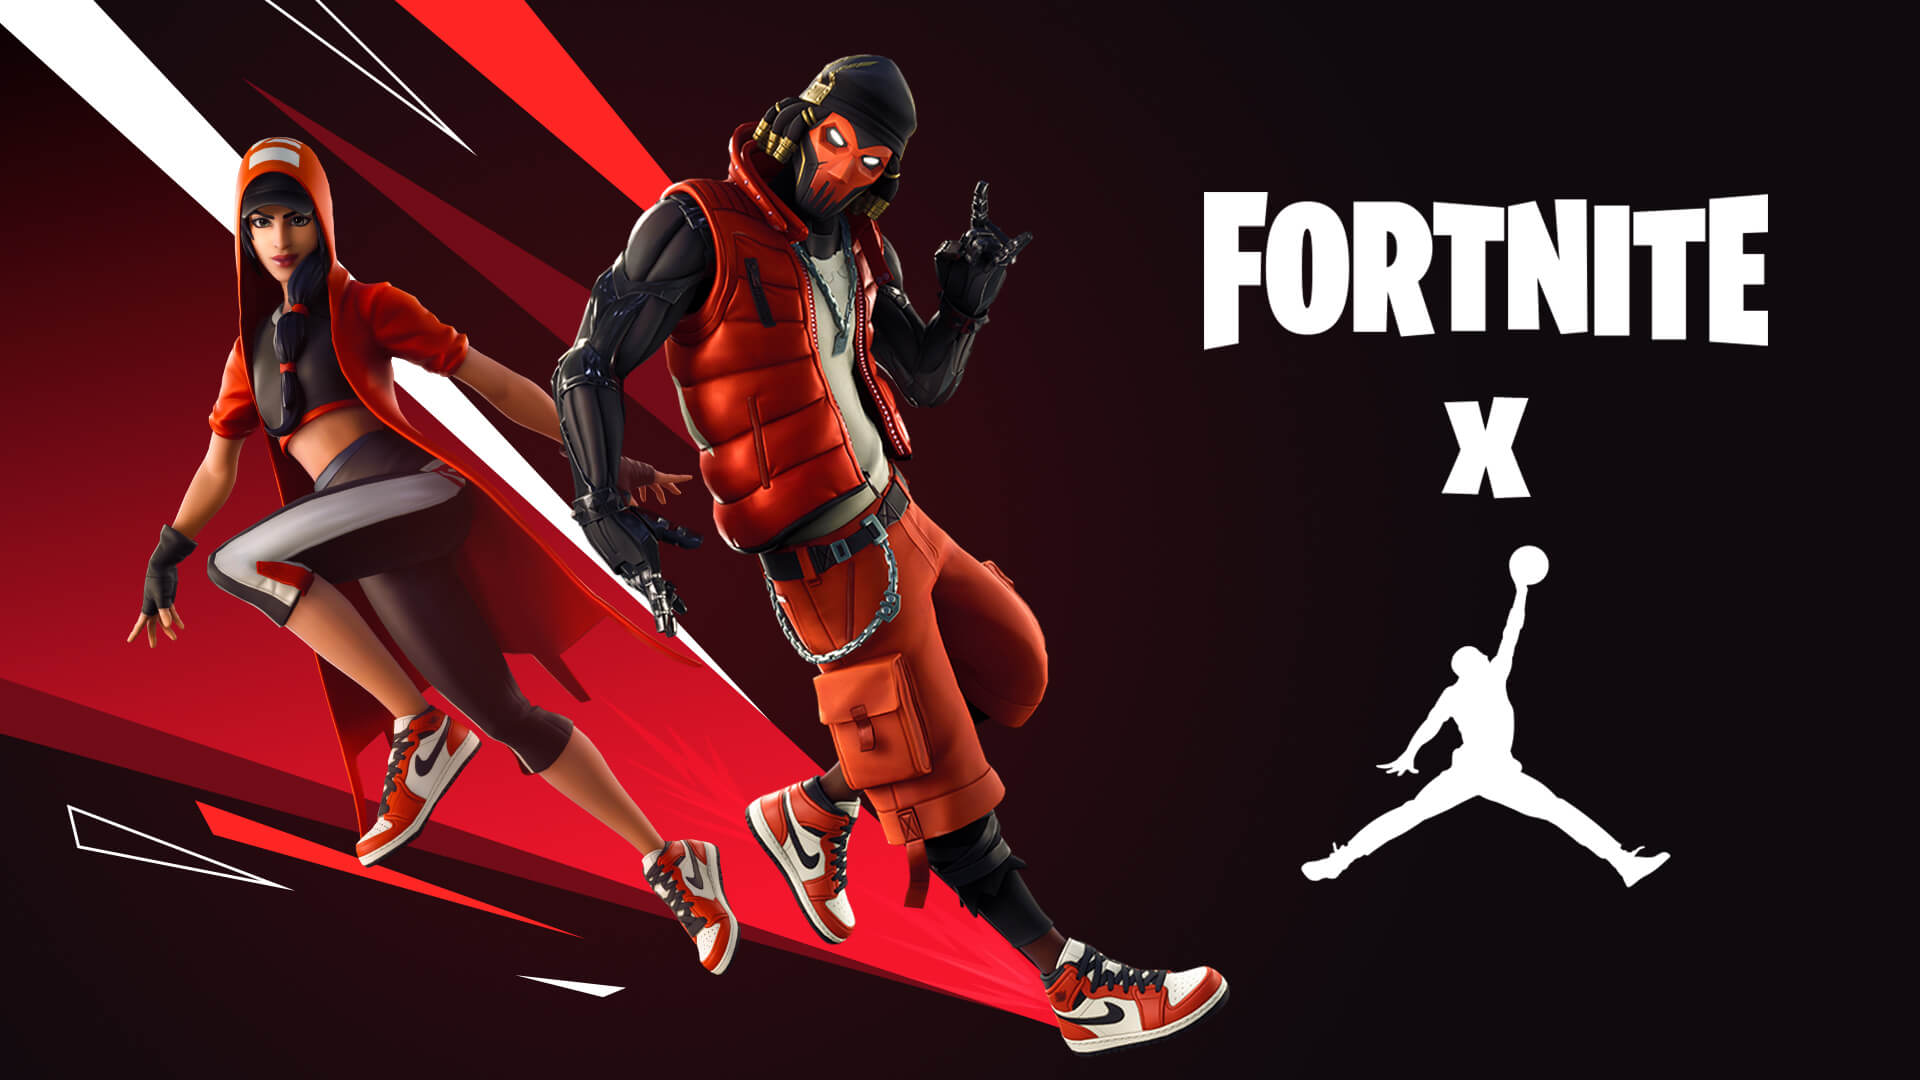 Fortnite x Jordan Collaboration